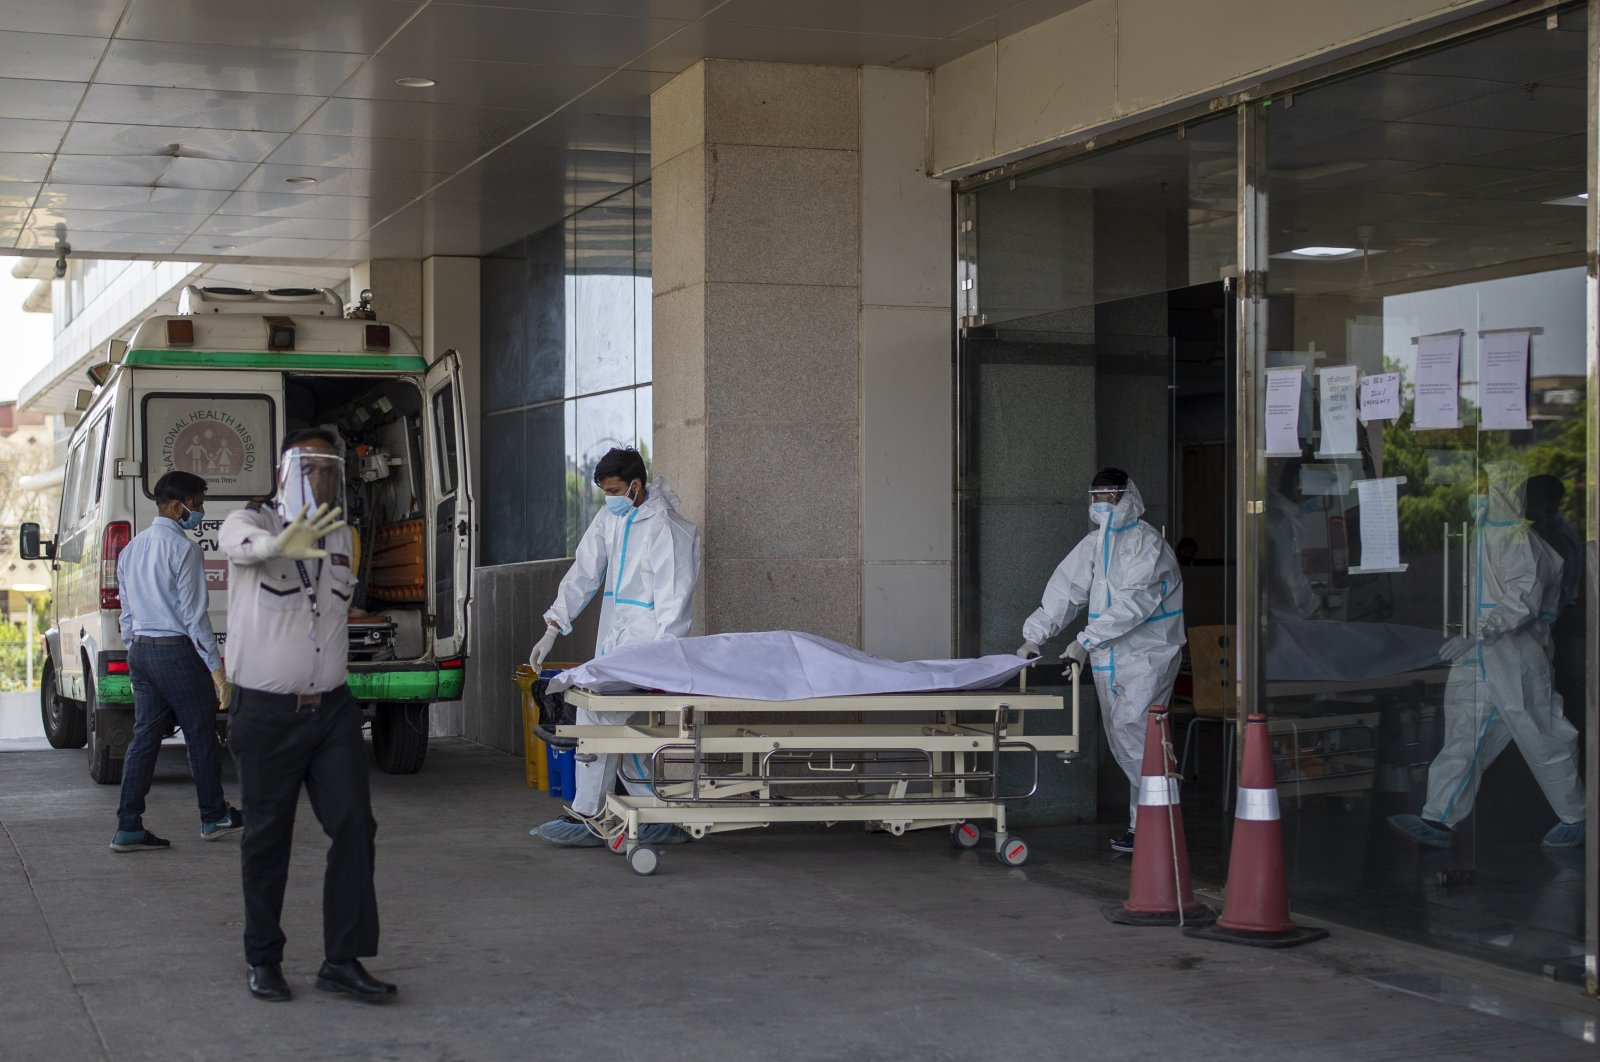 A security guard objects to taking pictures as hospital staff shift the body of a COVID-19 patient on a stretcher to a waiting ambulance at a government COVID-19 hospital in Noida, a suburb of New Delhi, India, April 21, 2021. (AP Photo)